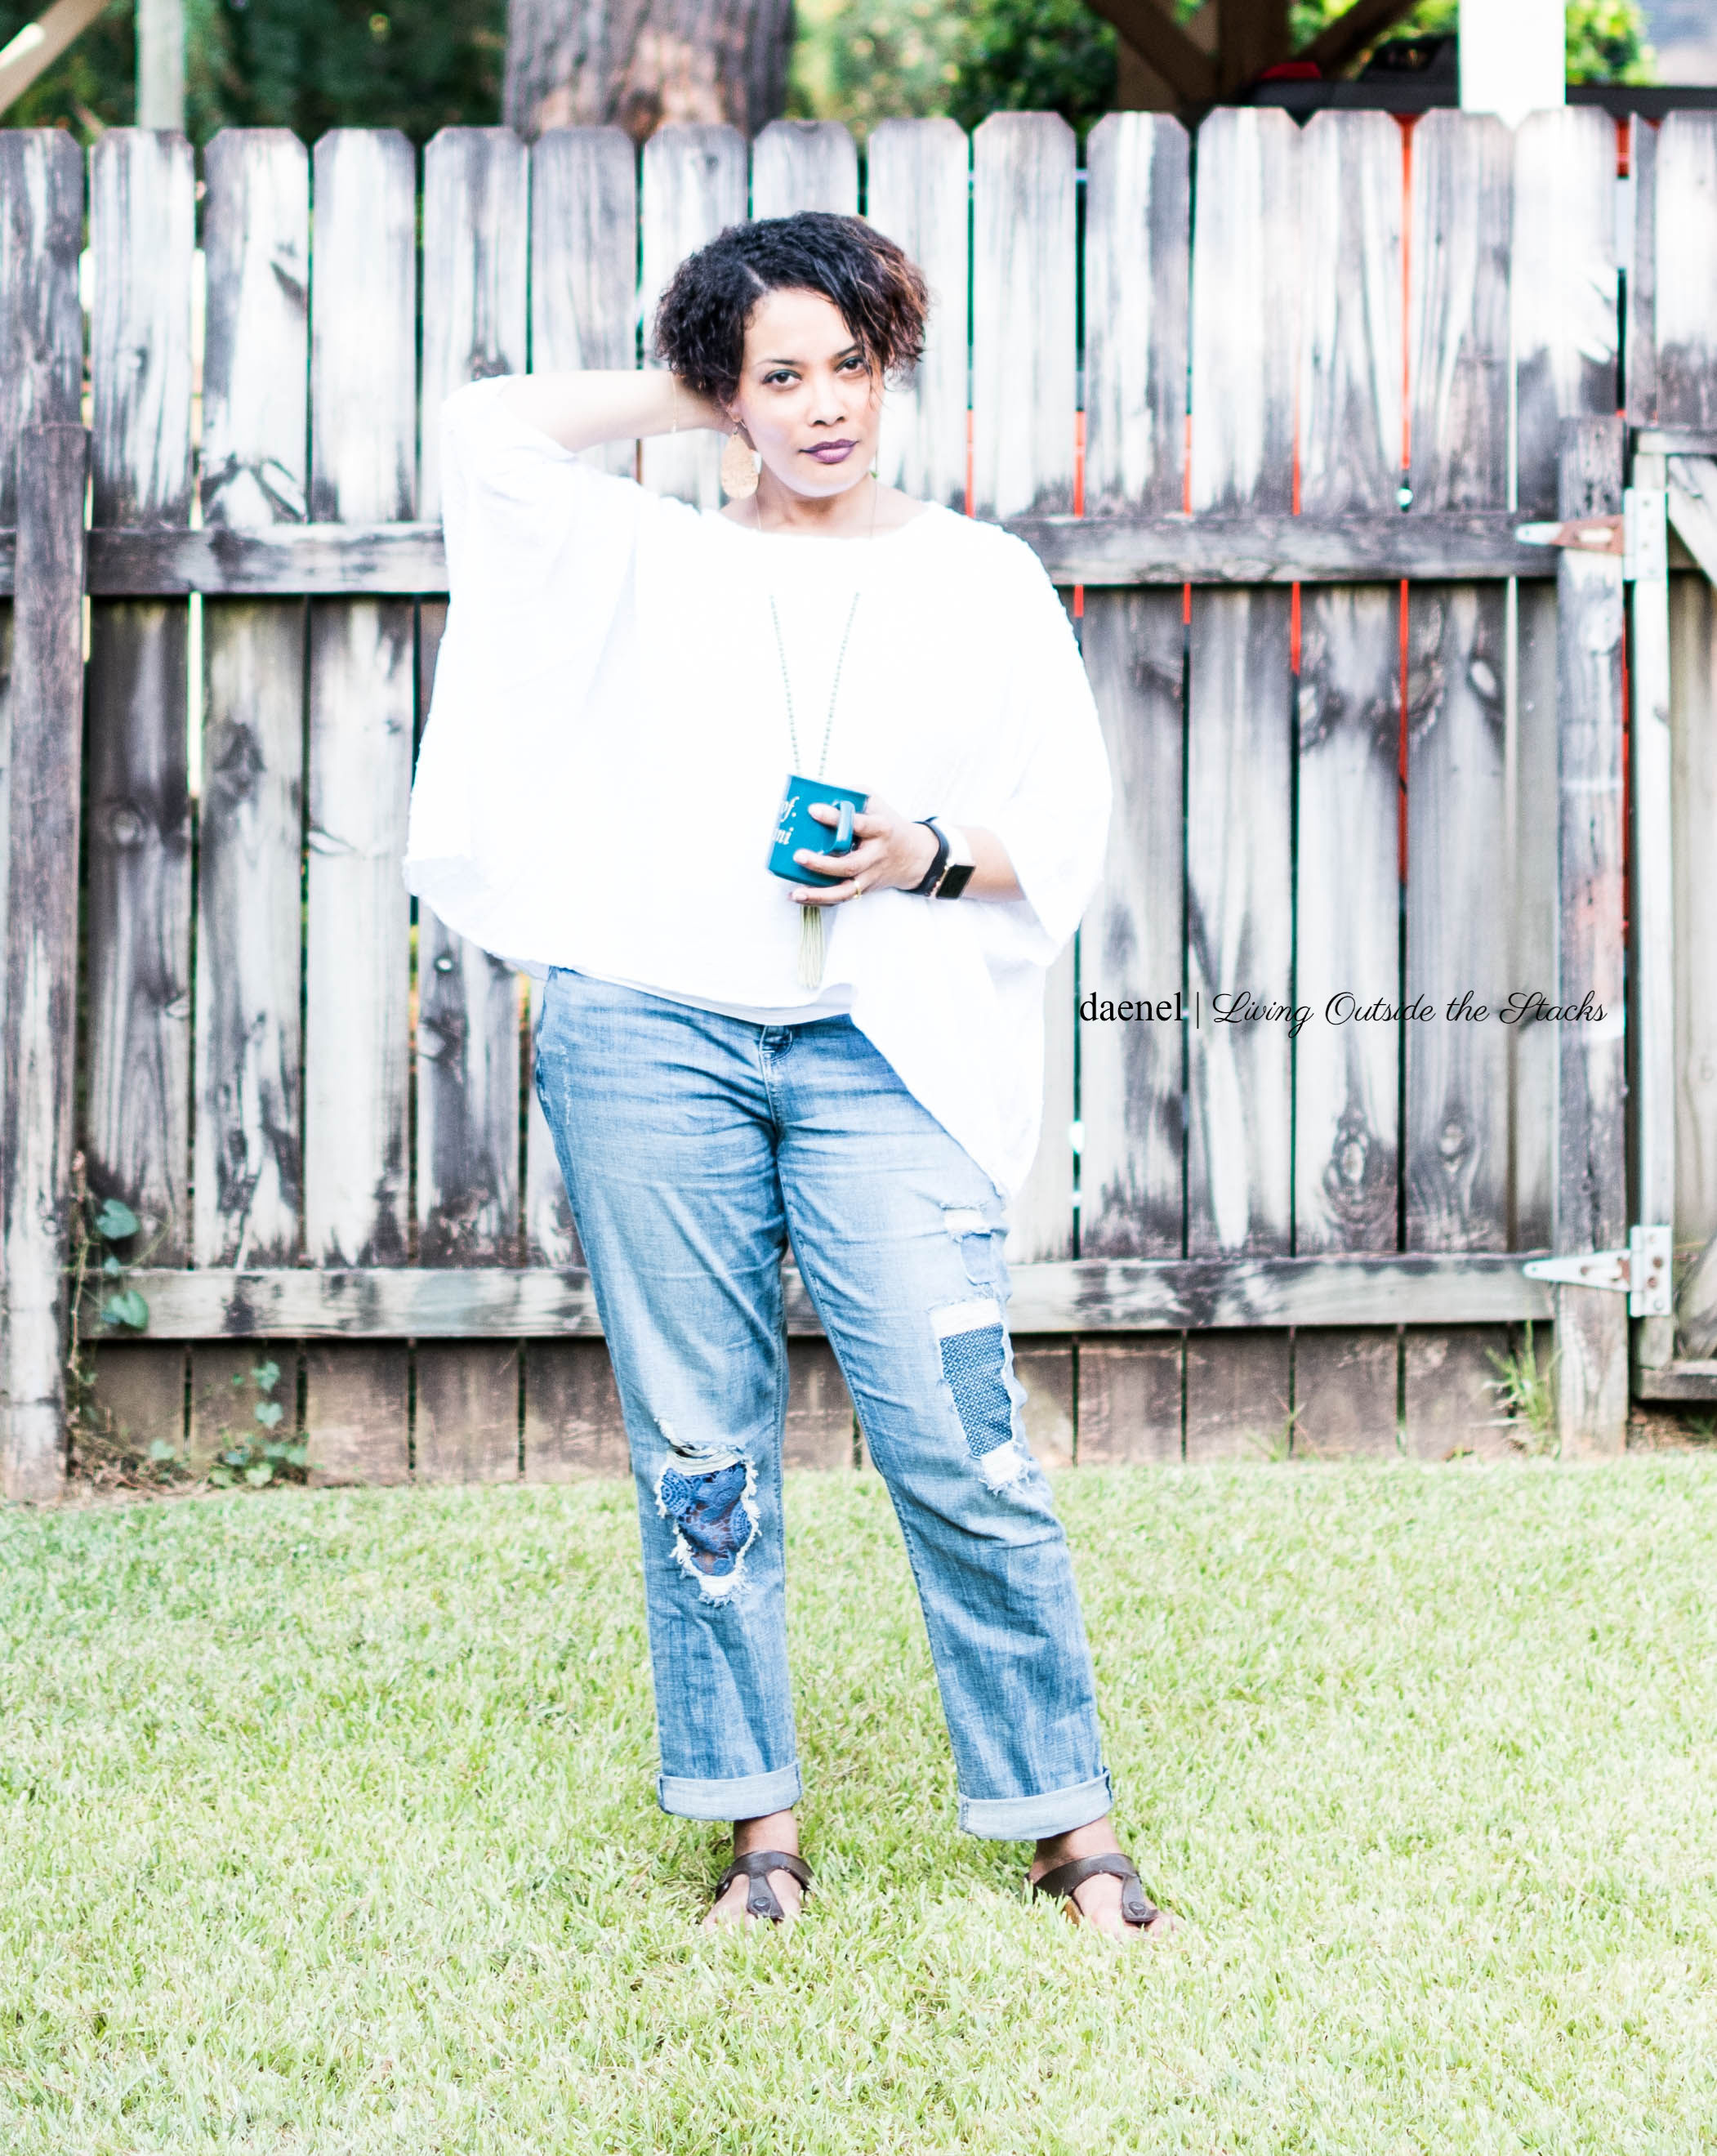 White Scarf Top by Ethyl Clothing Weekender Underpatch Jeans by Laurie Felt and Birkenstock Giza Sandals {living outside the stacks} #StyleImitatingArt